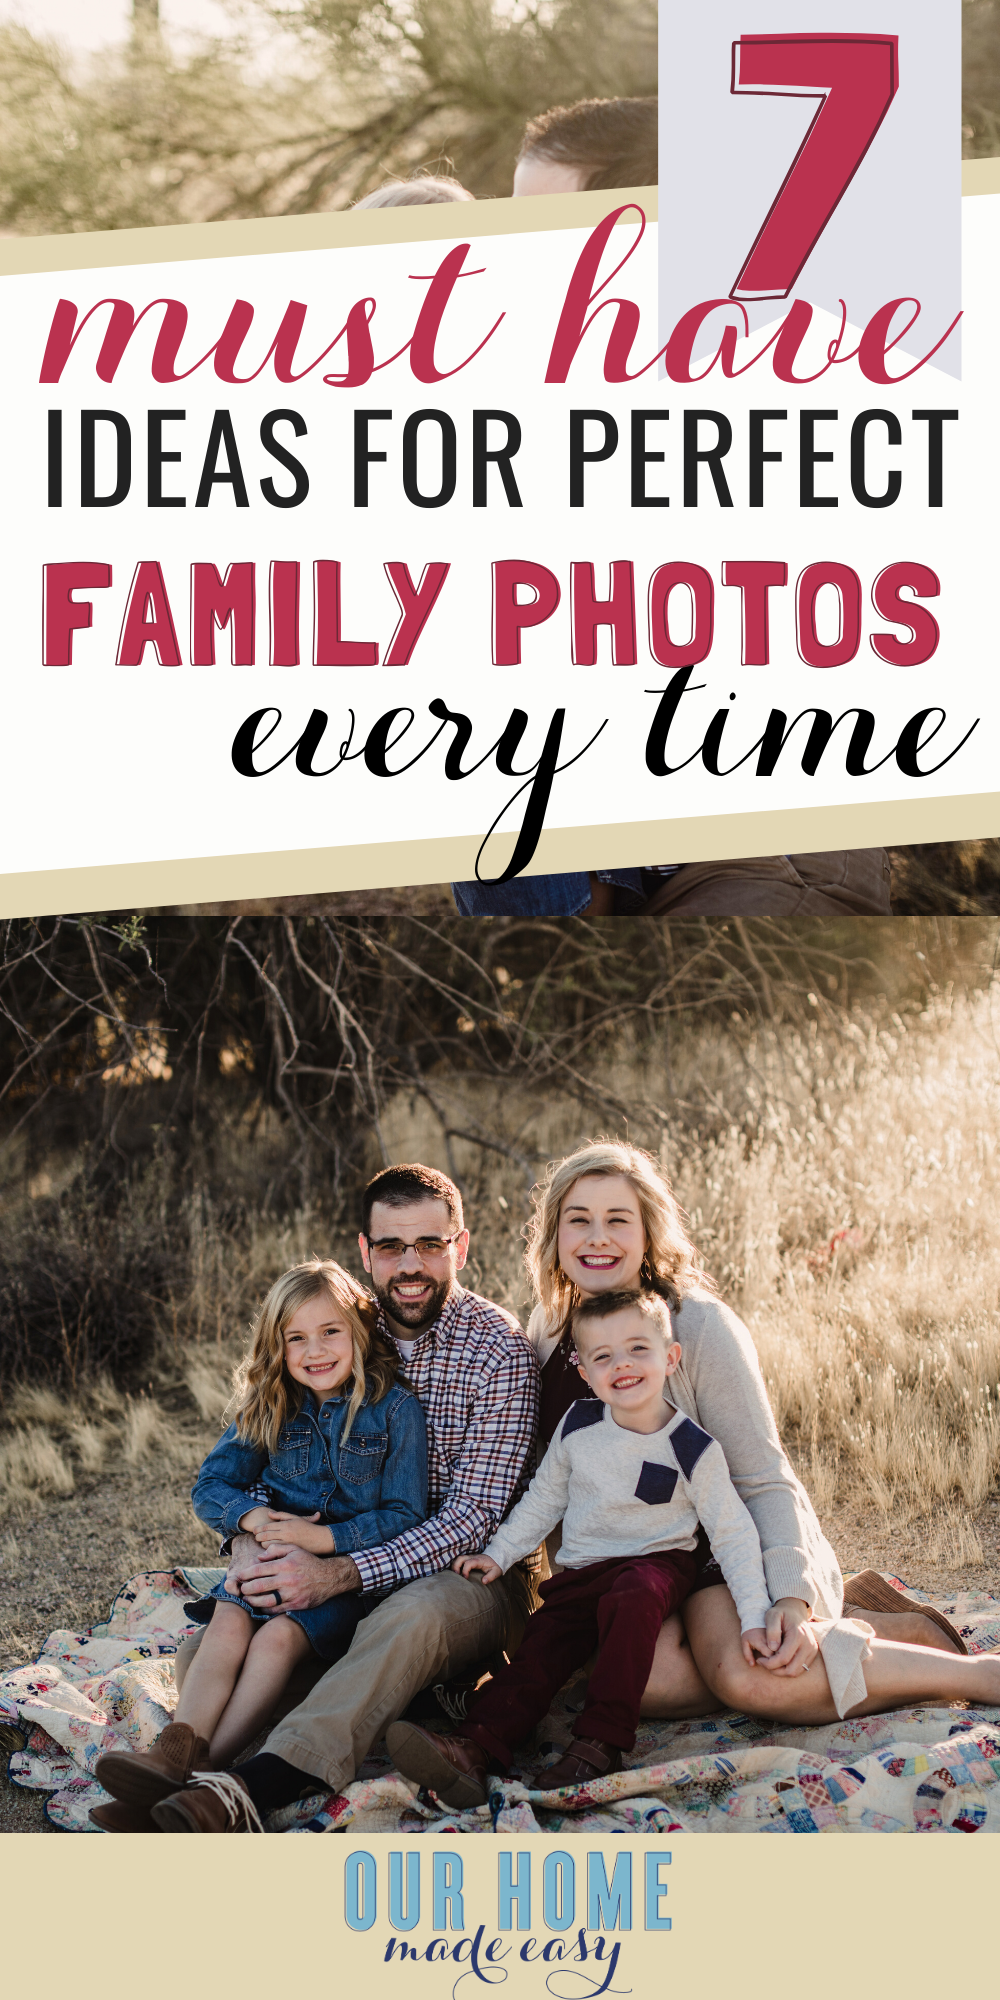 how to make family photo outfit ideas